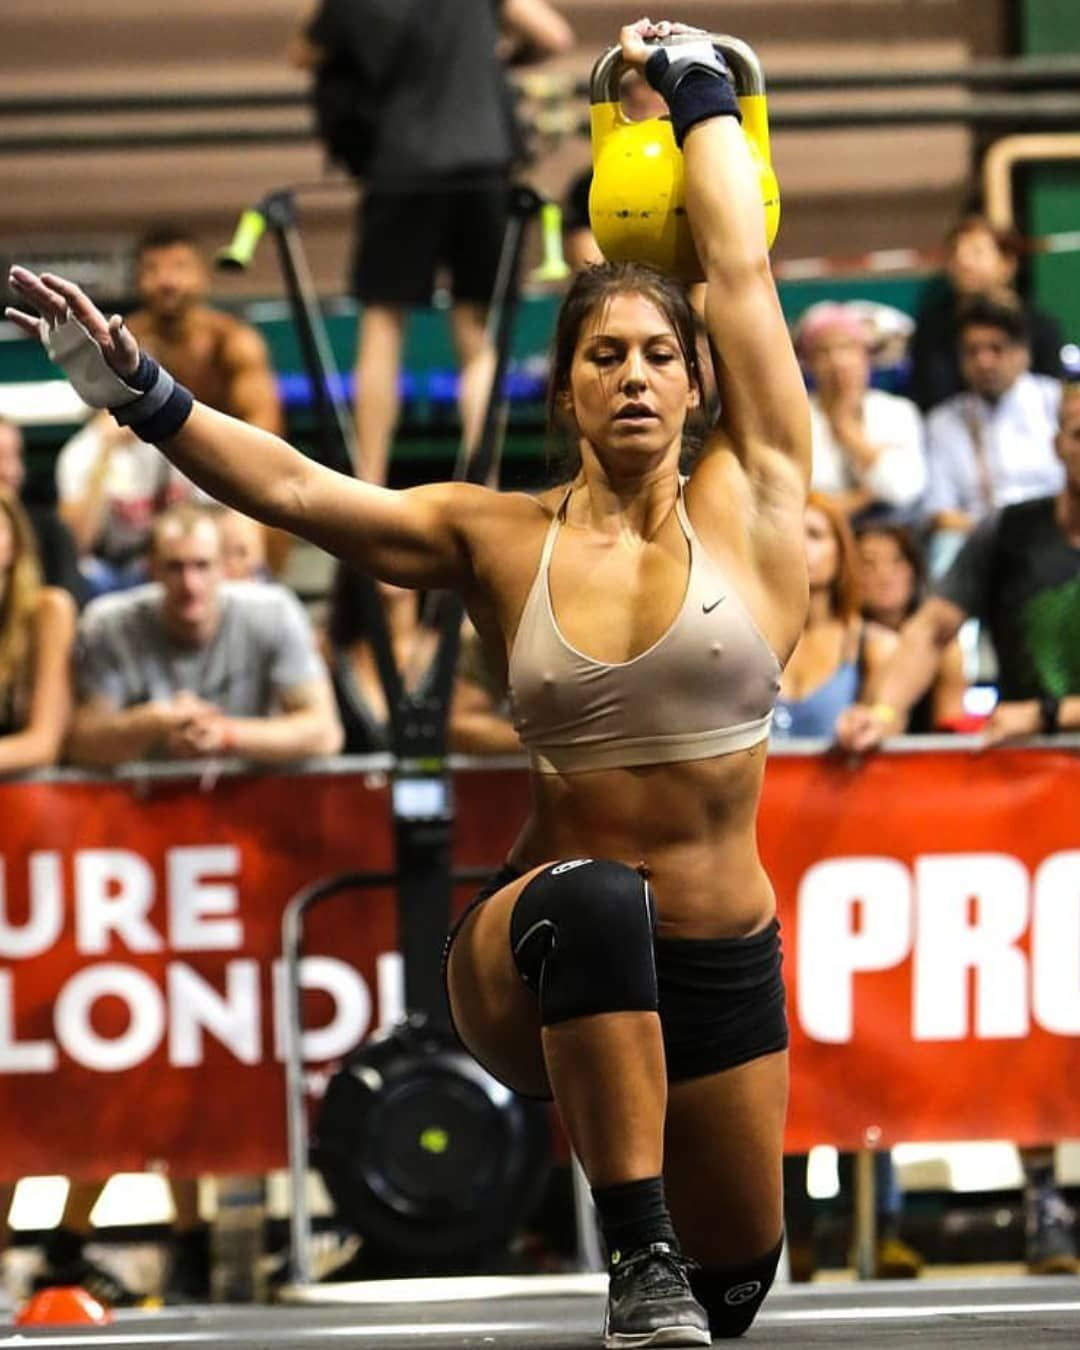 Sarah Massoni CrossFit Athlete CrossLiftor